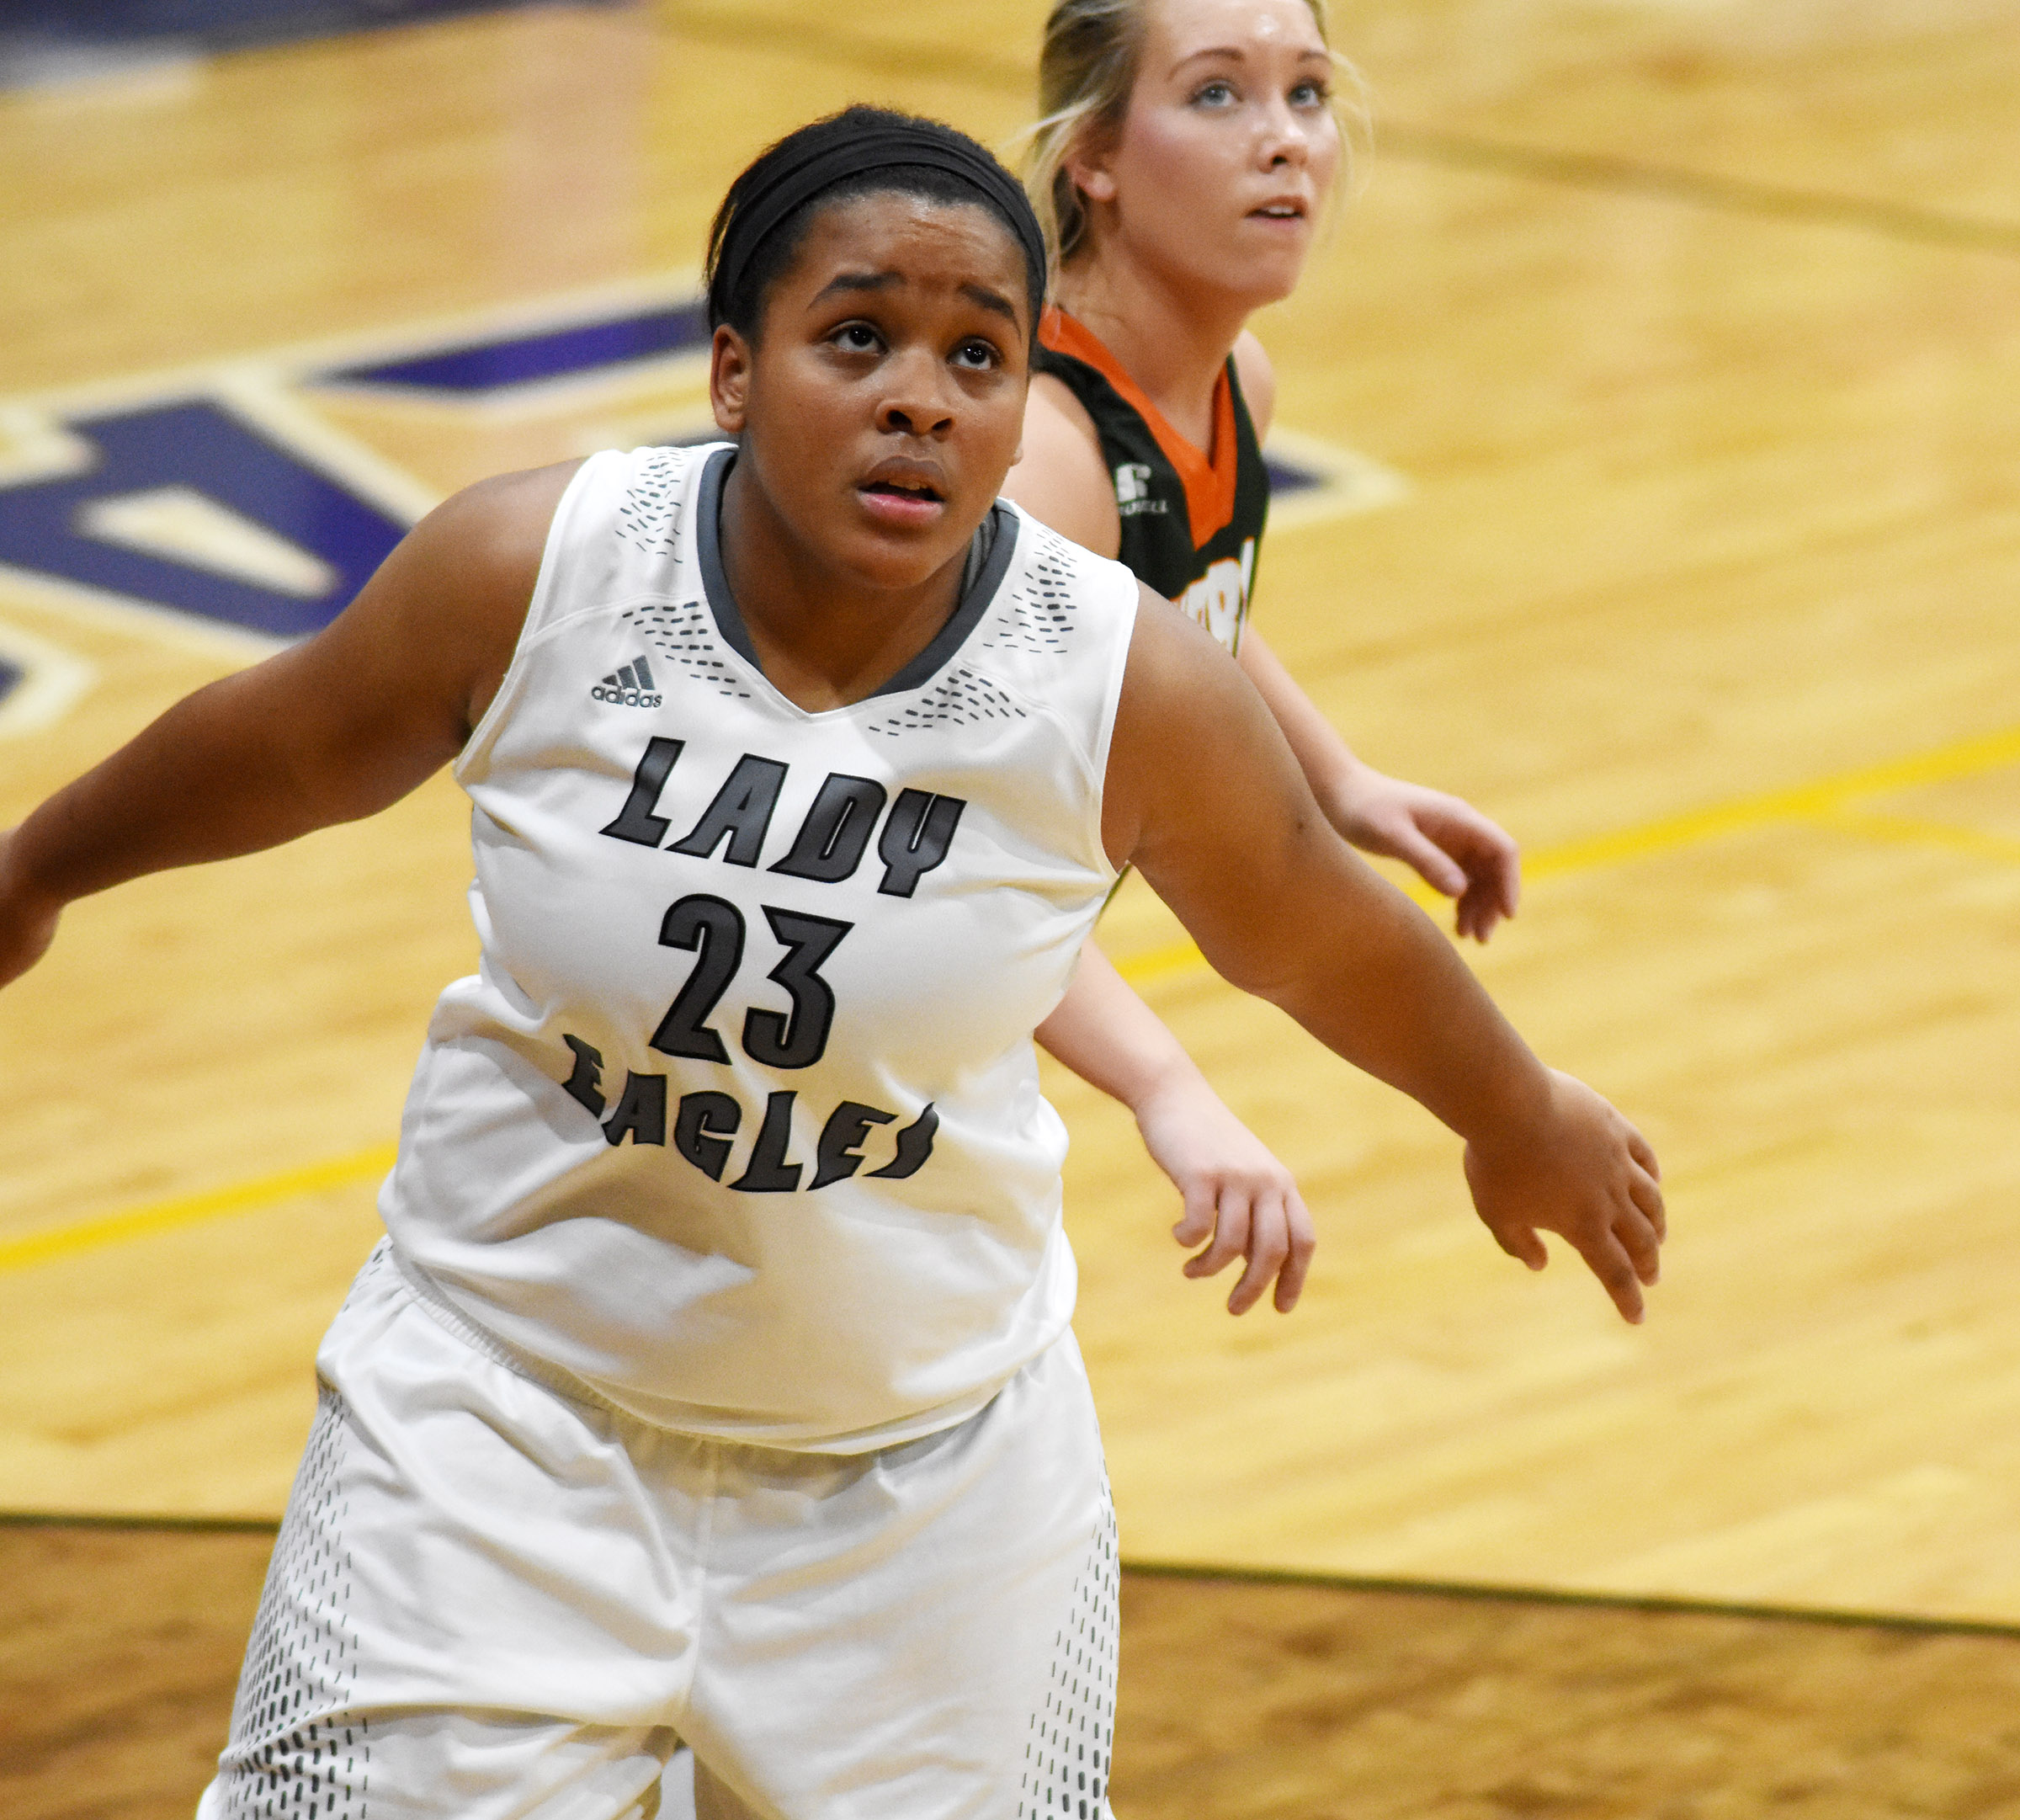 CHS senior Kayla Young looks for a rebound.